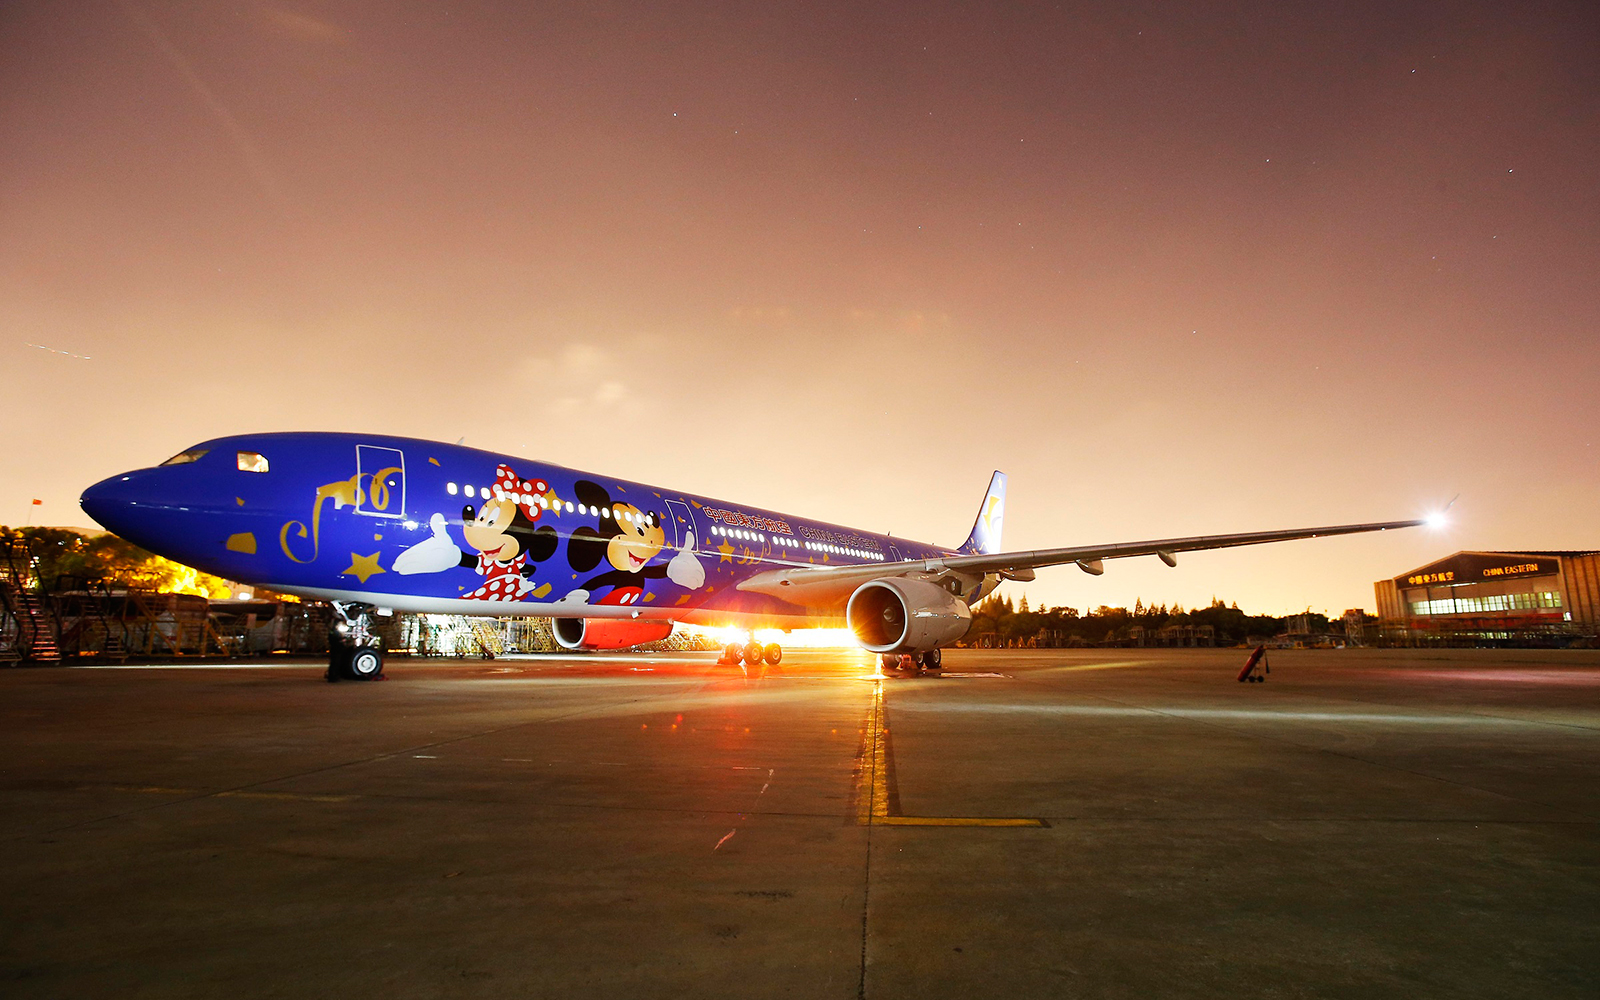 There's a New Disney-Themed Airplane